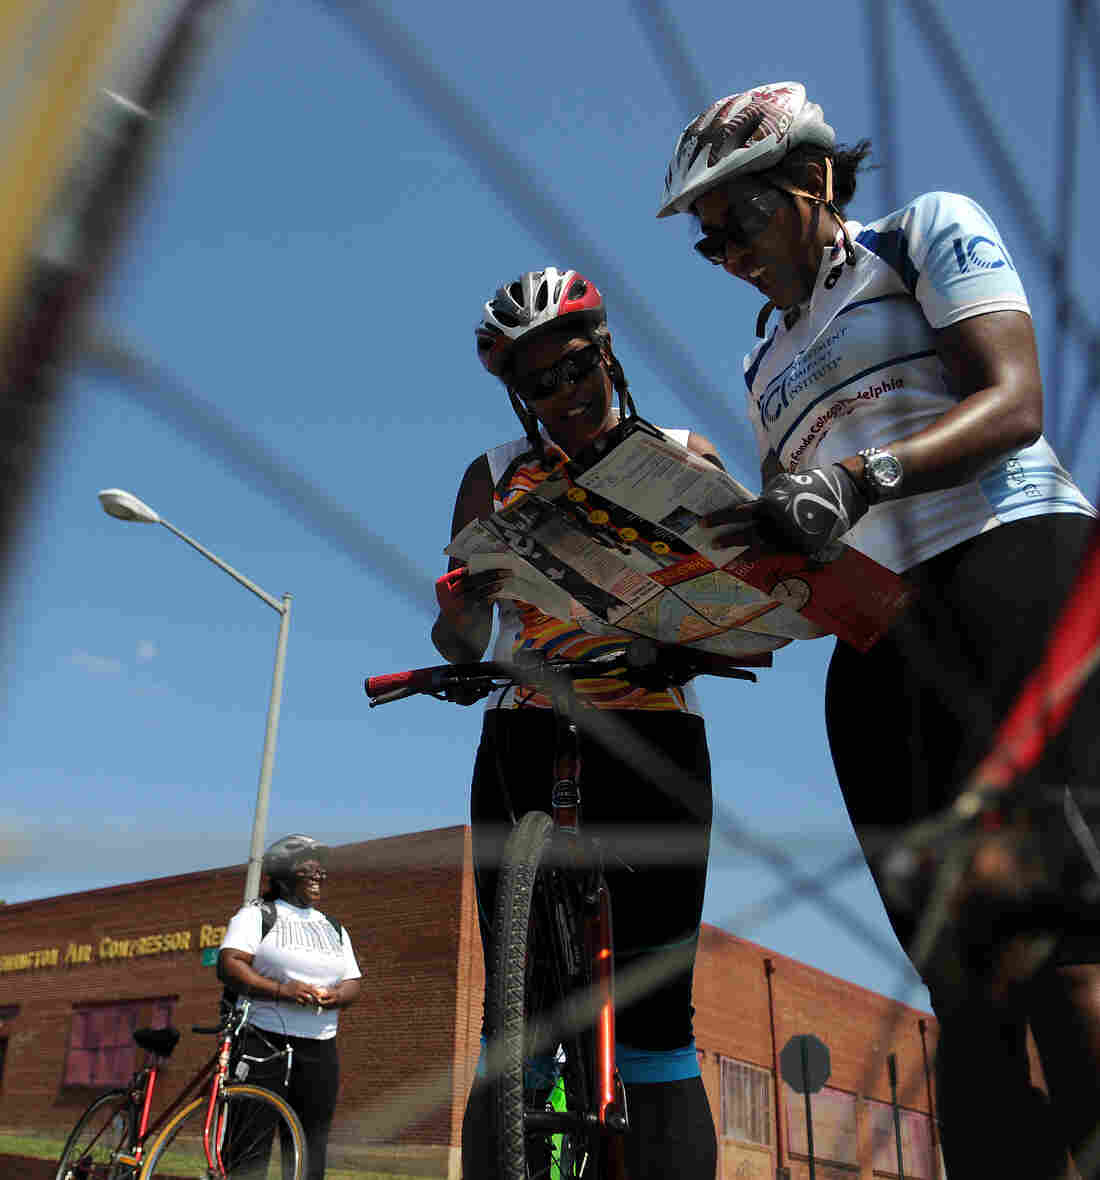 Members of Black Women Bike: DC consult a map while on the road at an event in June 2011.